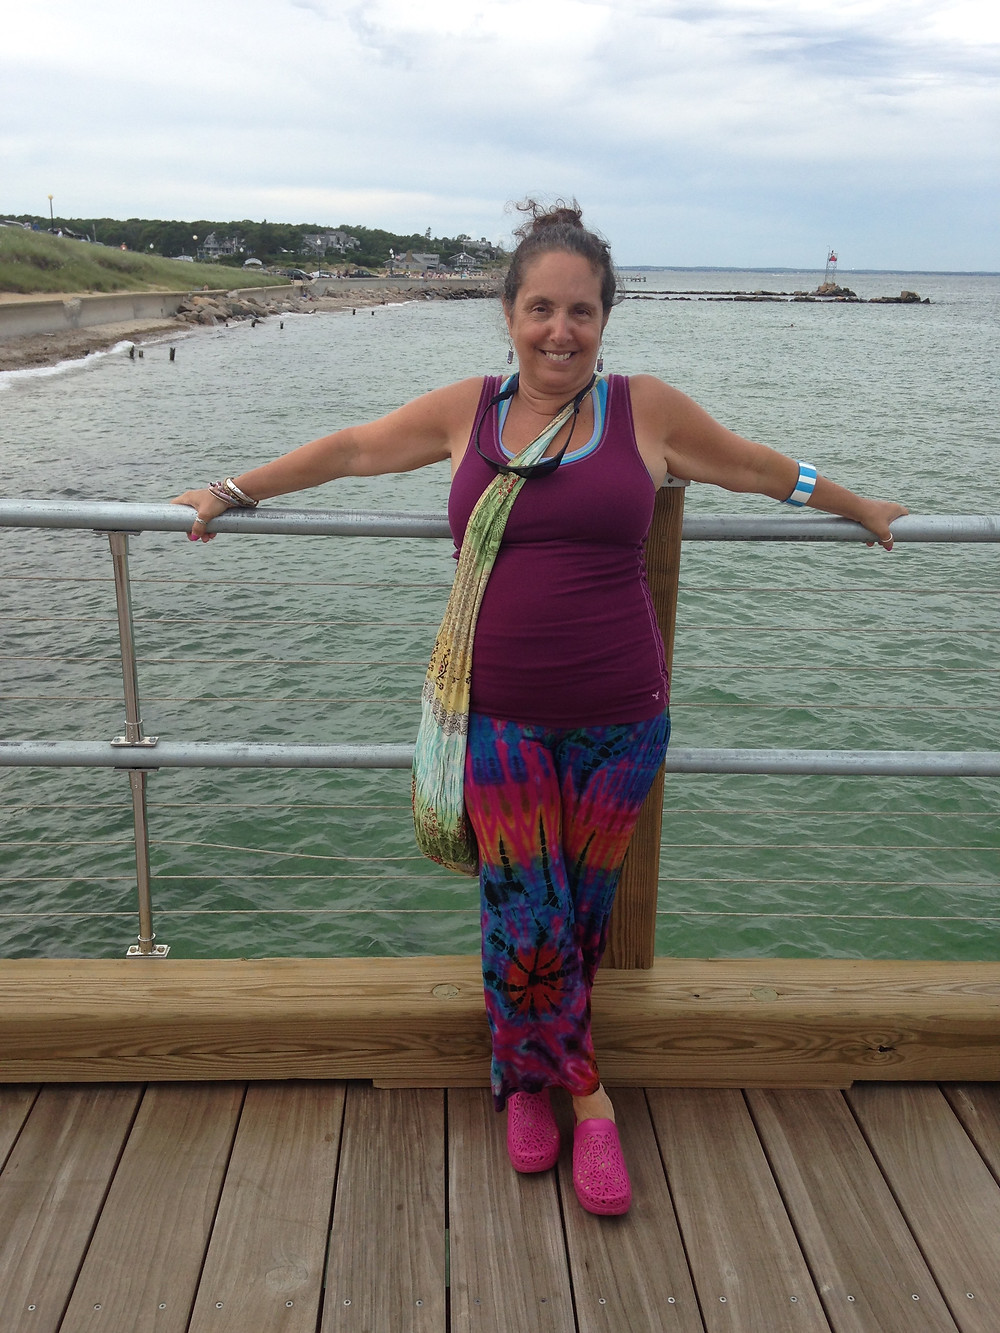 My Mother, in her vacation glory. MV 2014